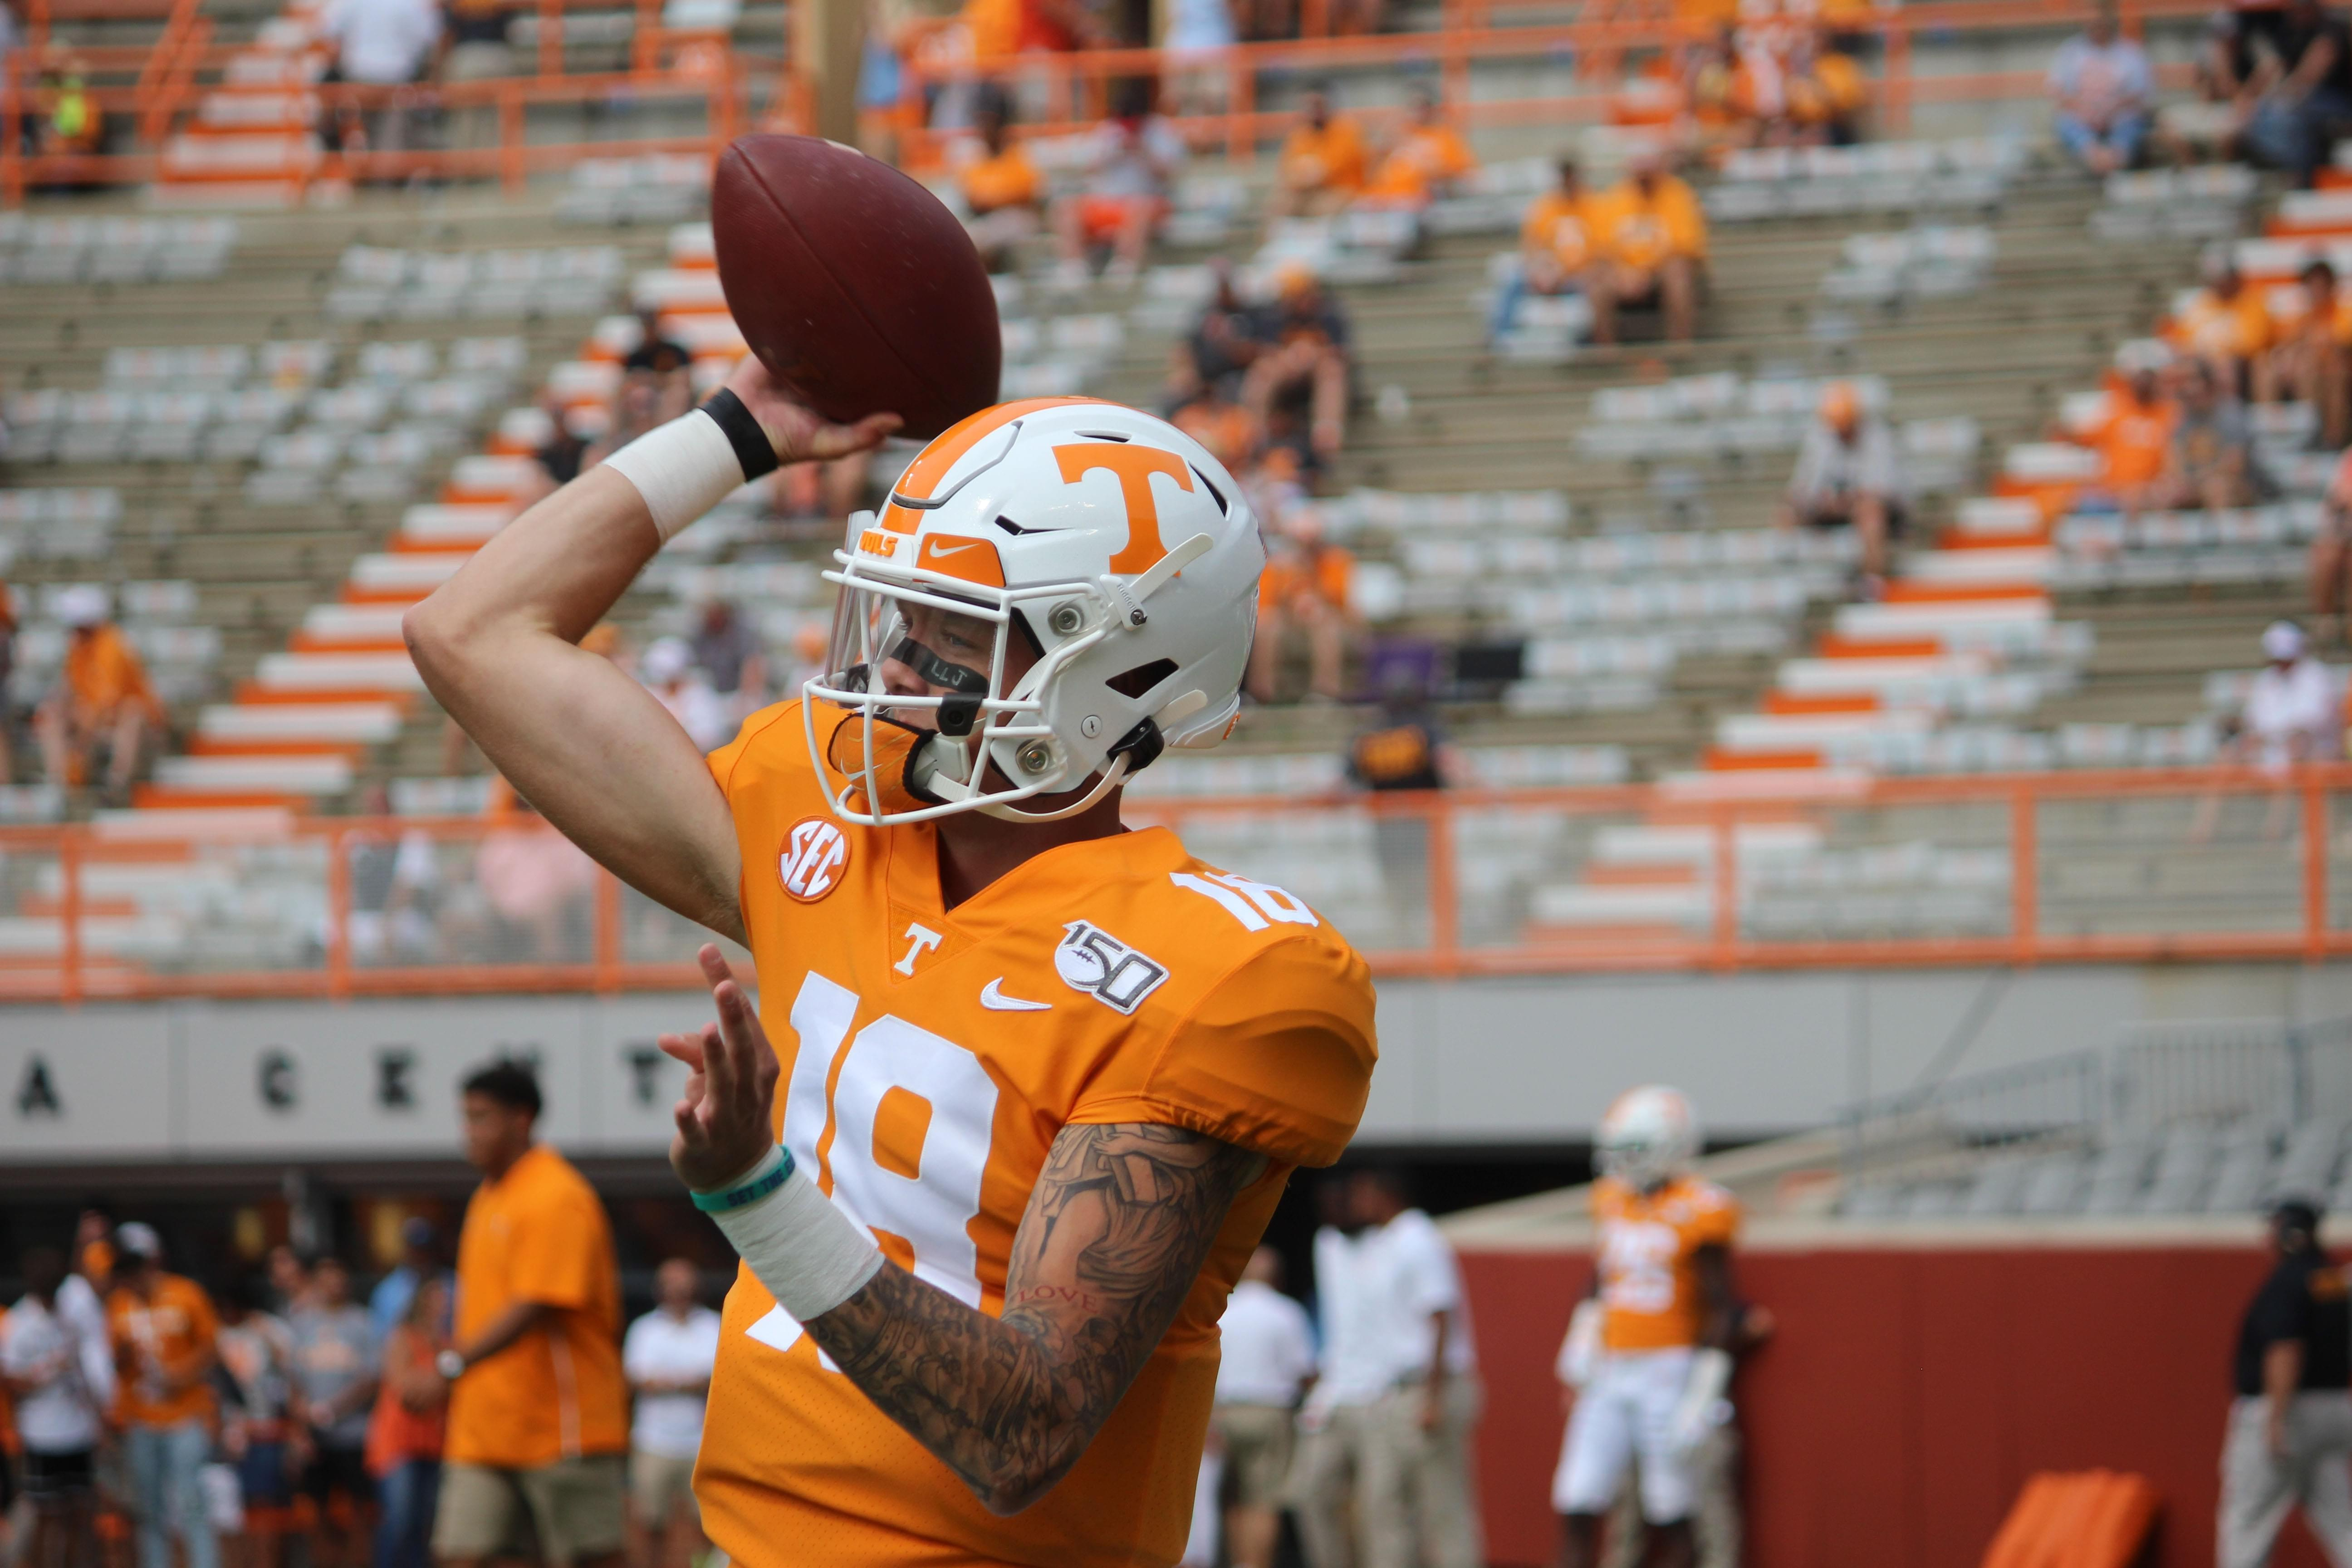 Silverberg: Some positives, but issues still linger for Vols